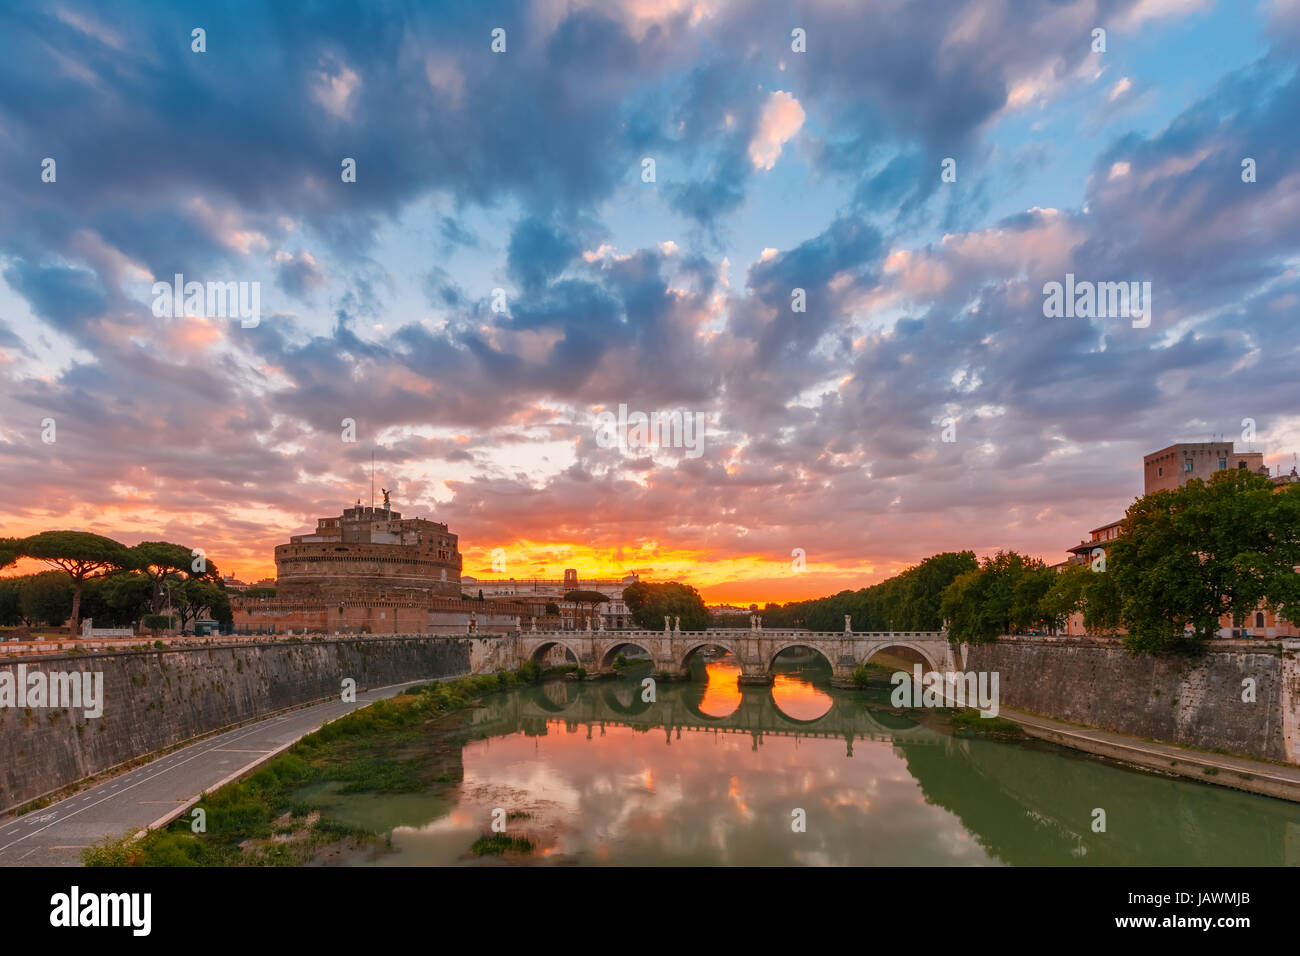 Saint Angel castle and bridge at sunrise, Rome - Stock Image